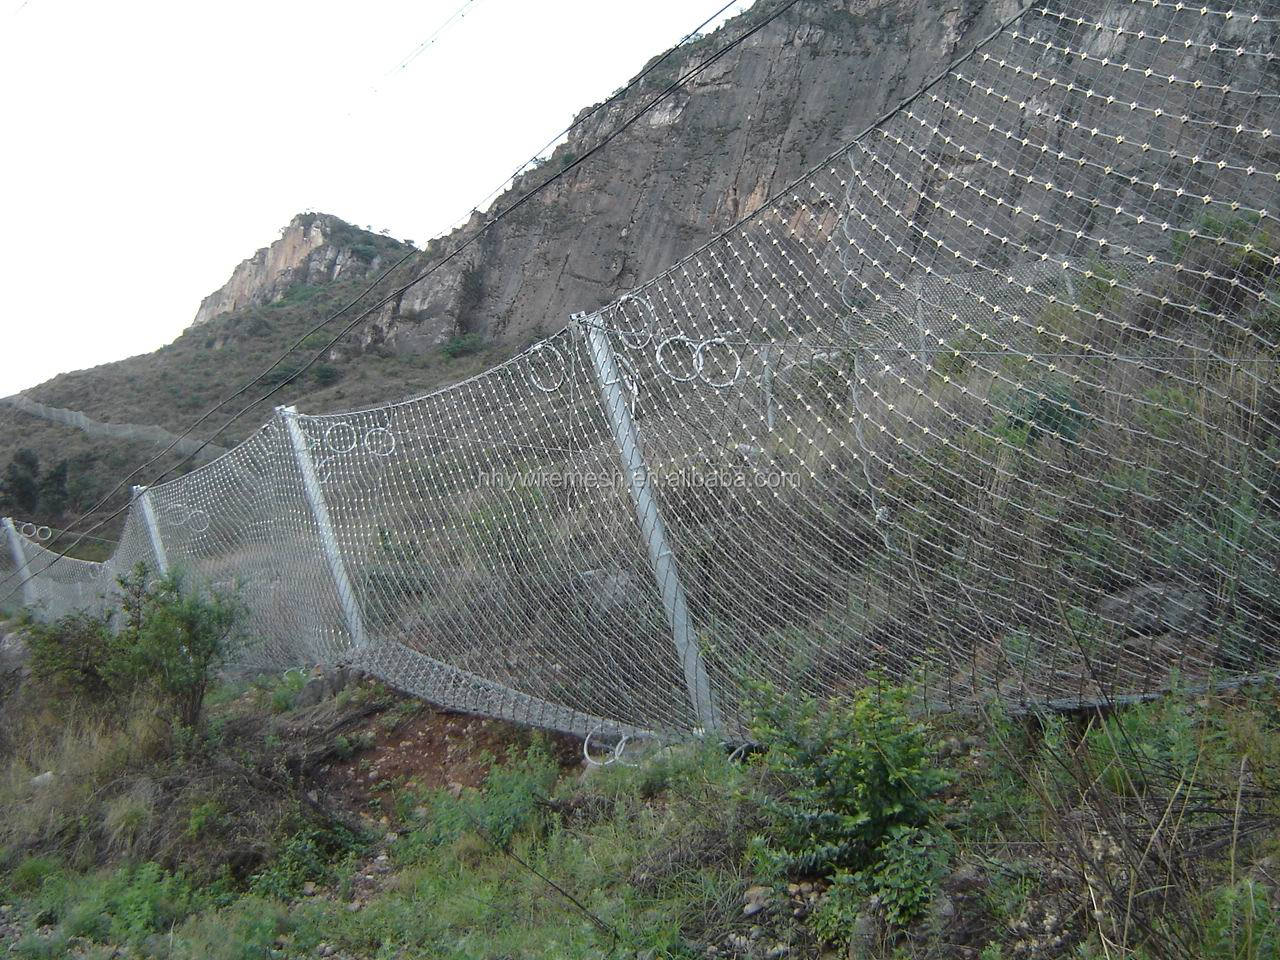 Protection System rockfall netting SNS Flexible Slope security screen wire mesh flexible metal mesh netting